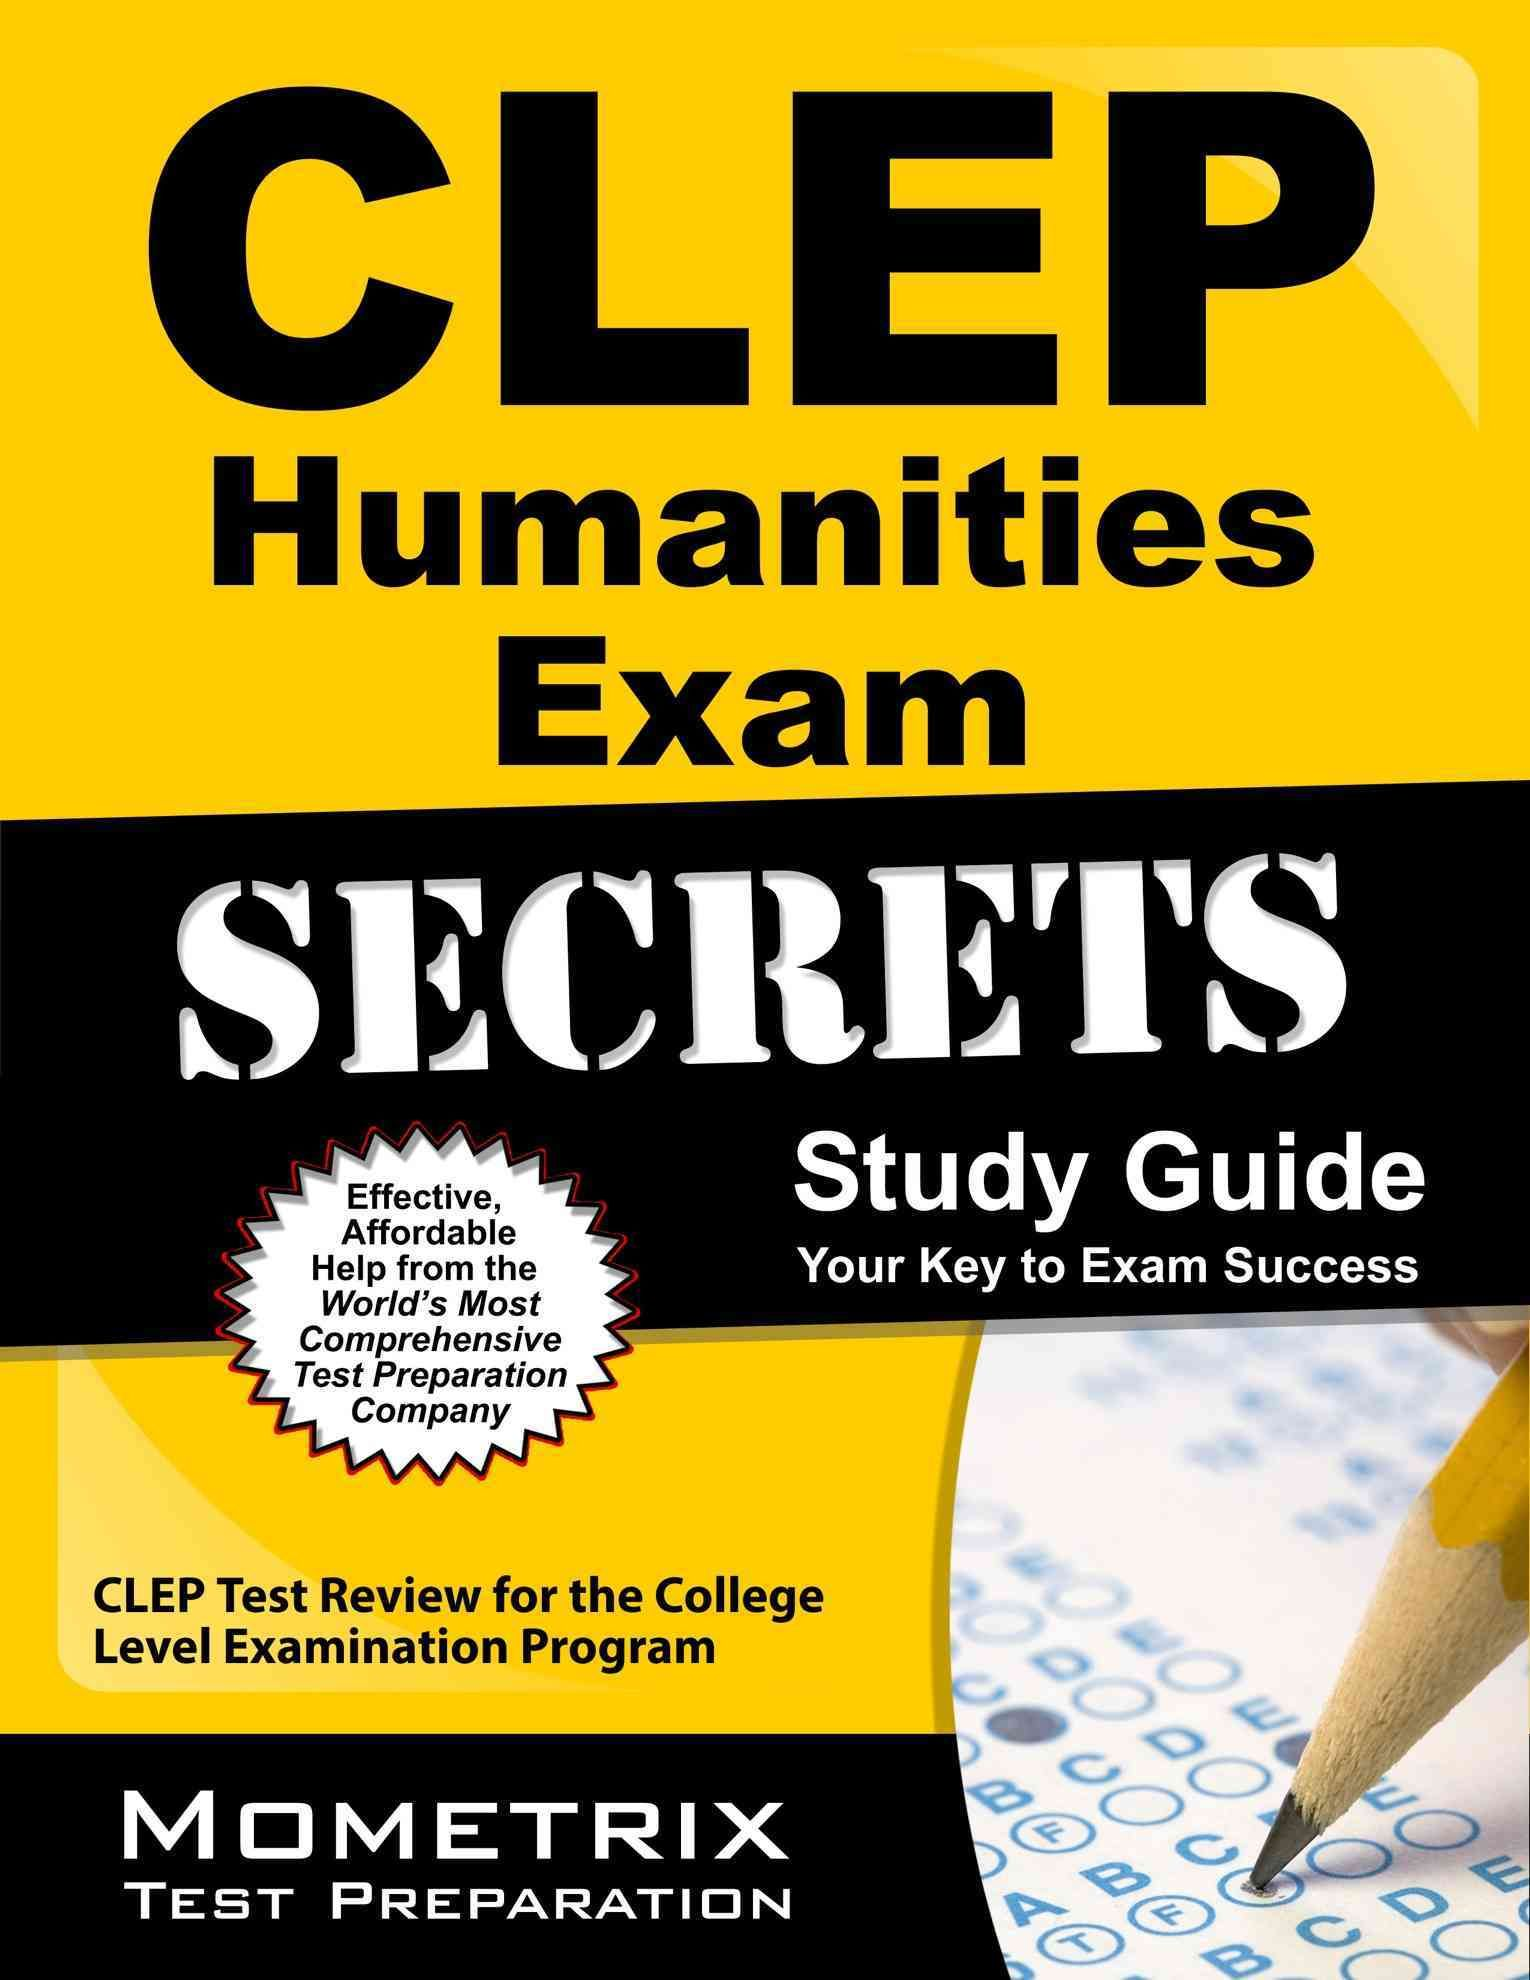 Description Not Available Clep Test Taking Strategies Pinterest